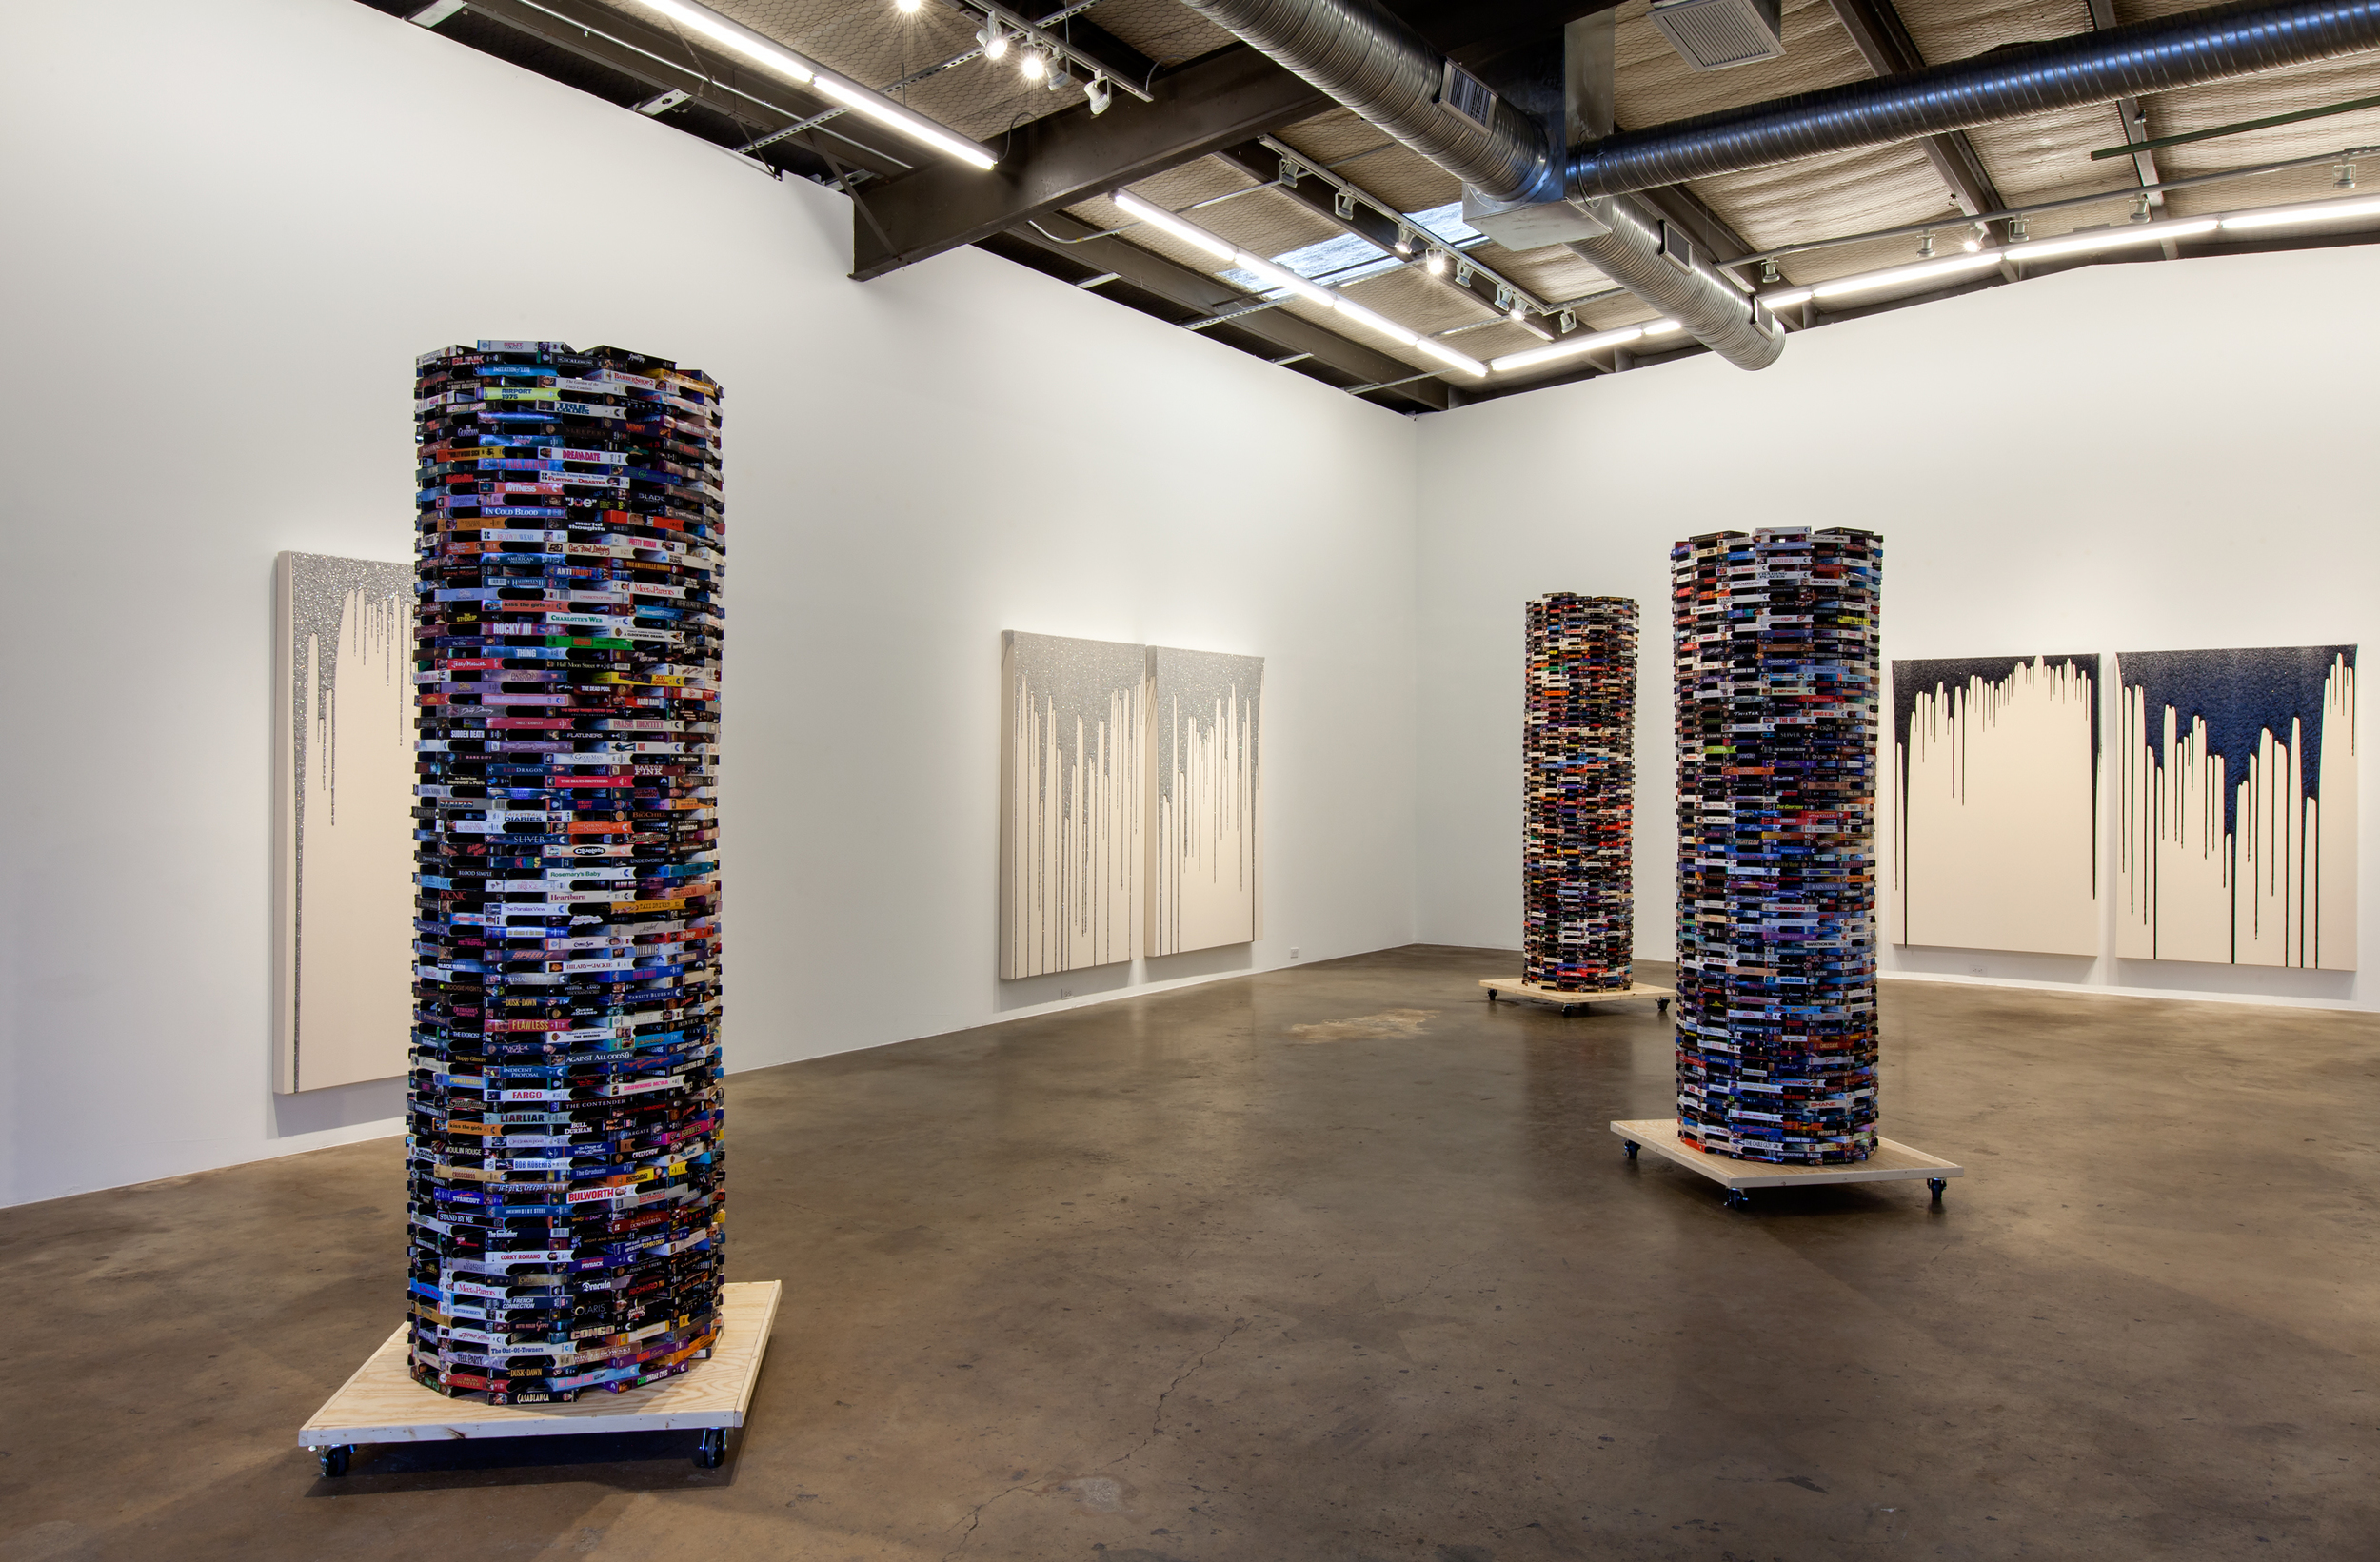 CHIVAS CLEM, Desperate to Appear Sophisticated and Other Titles, Installation view April 2015.